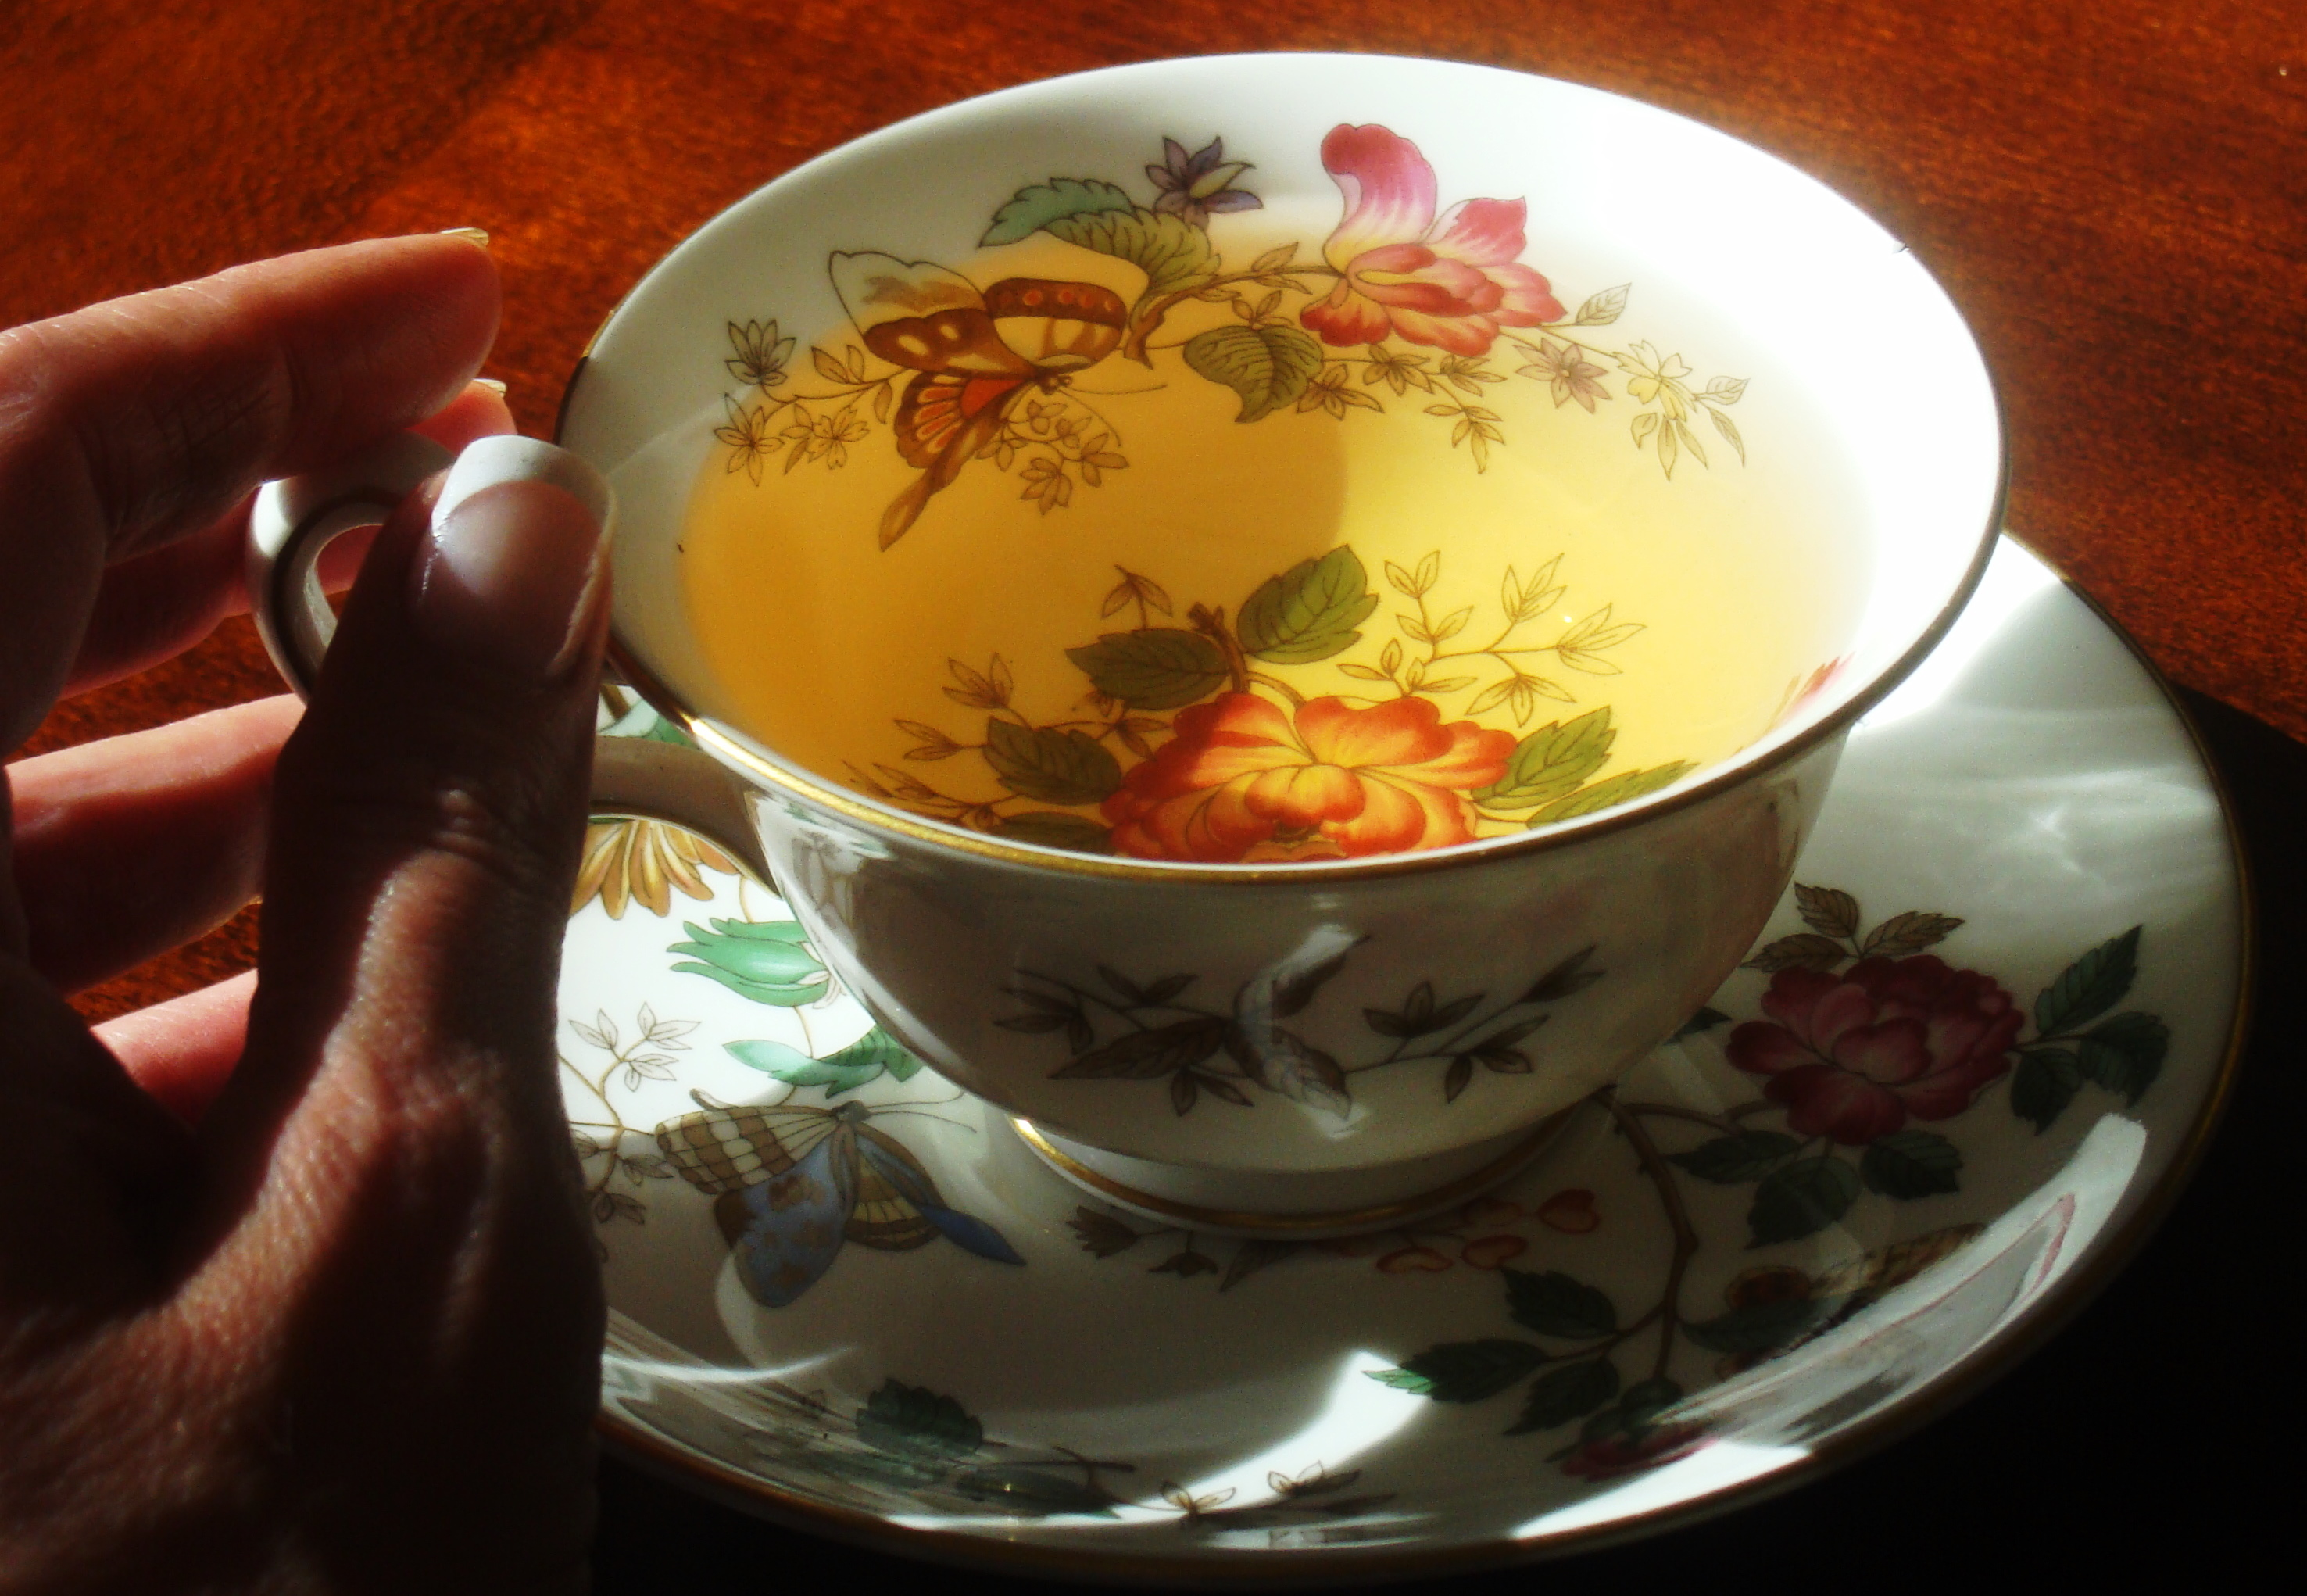 Tea can provoke a need for candlelight.